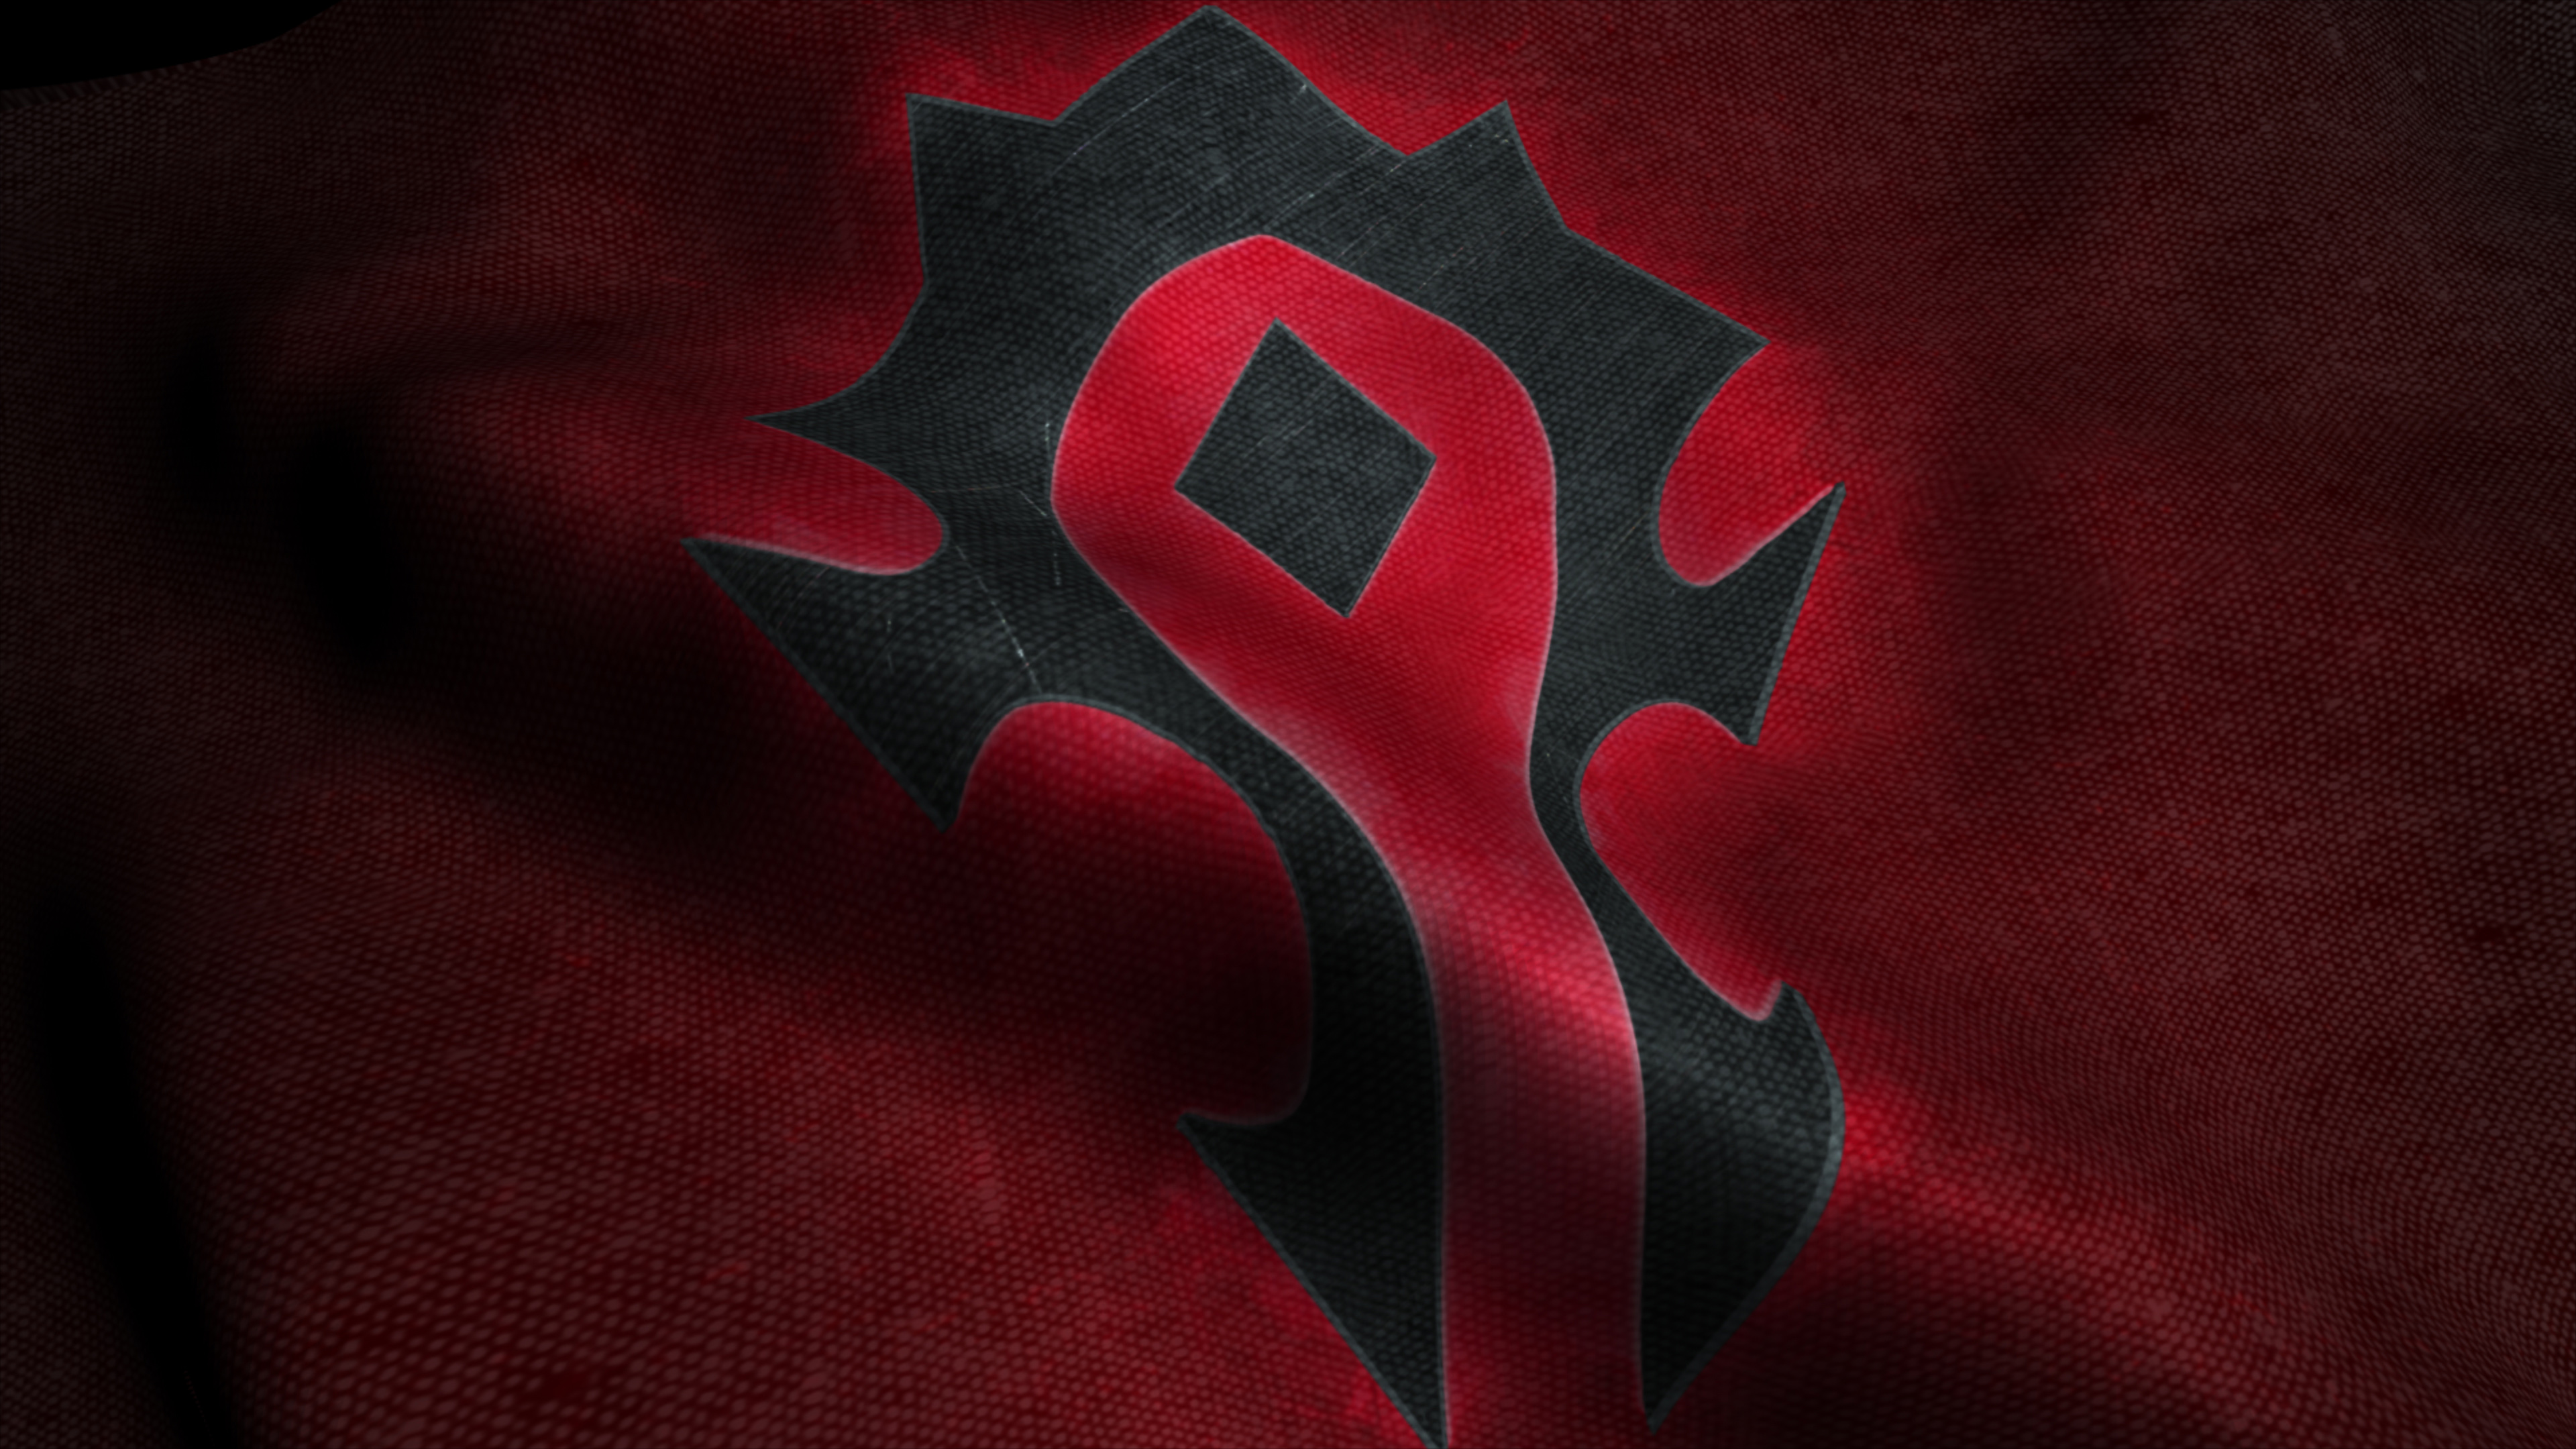 Wow Horde Wallpaper Posted By Samantha Cunningham